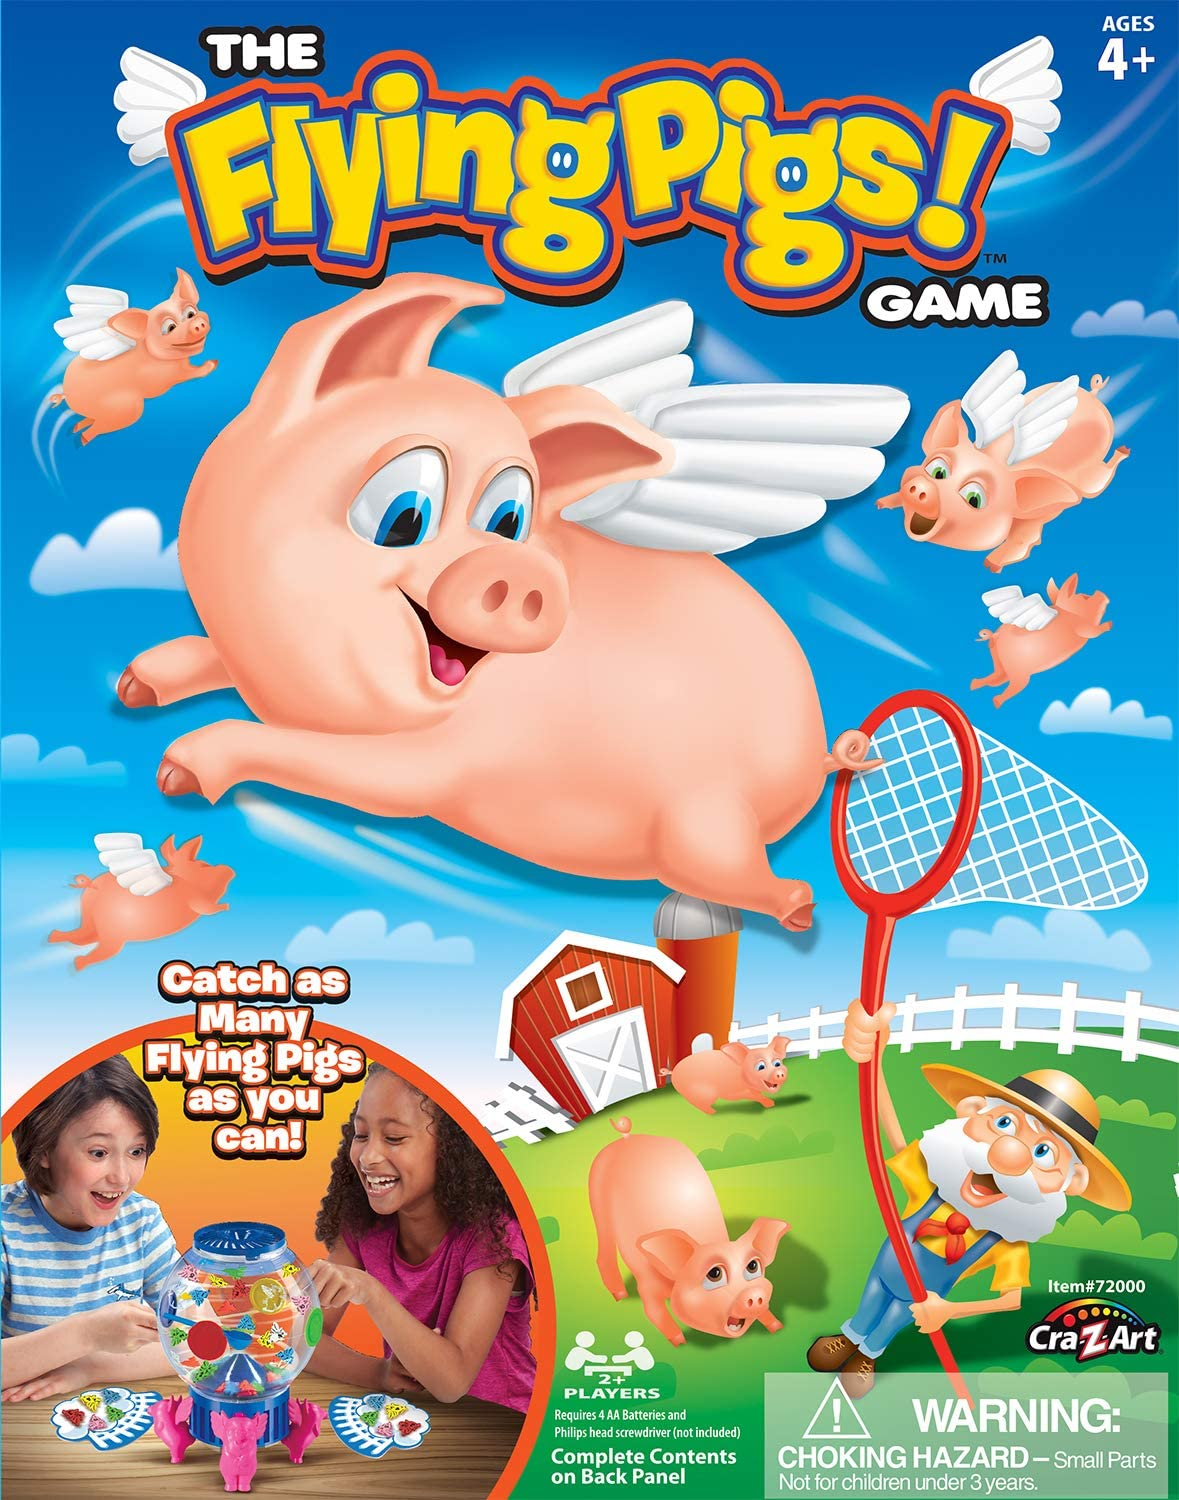 THE FLYING PIGS GAMES